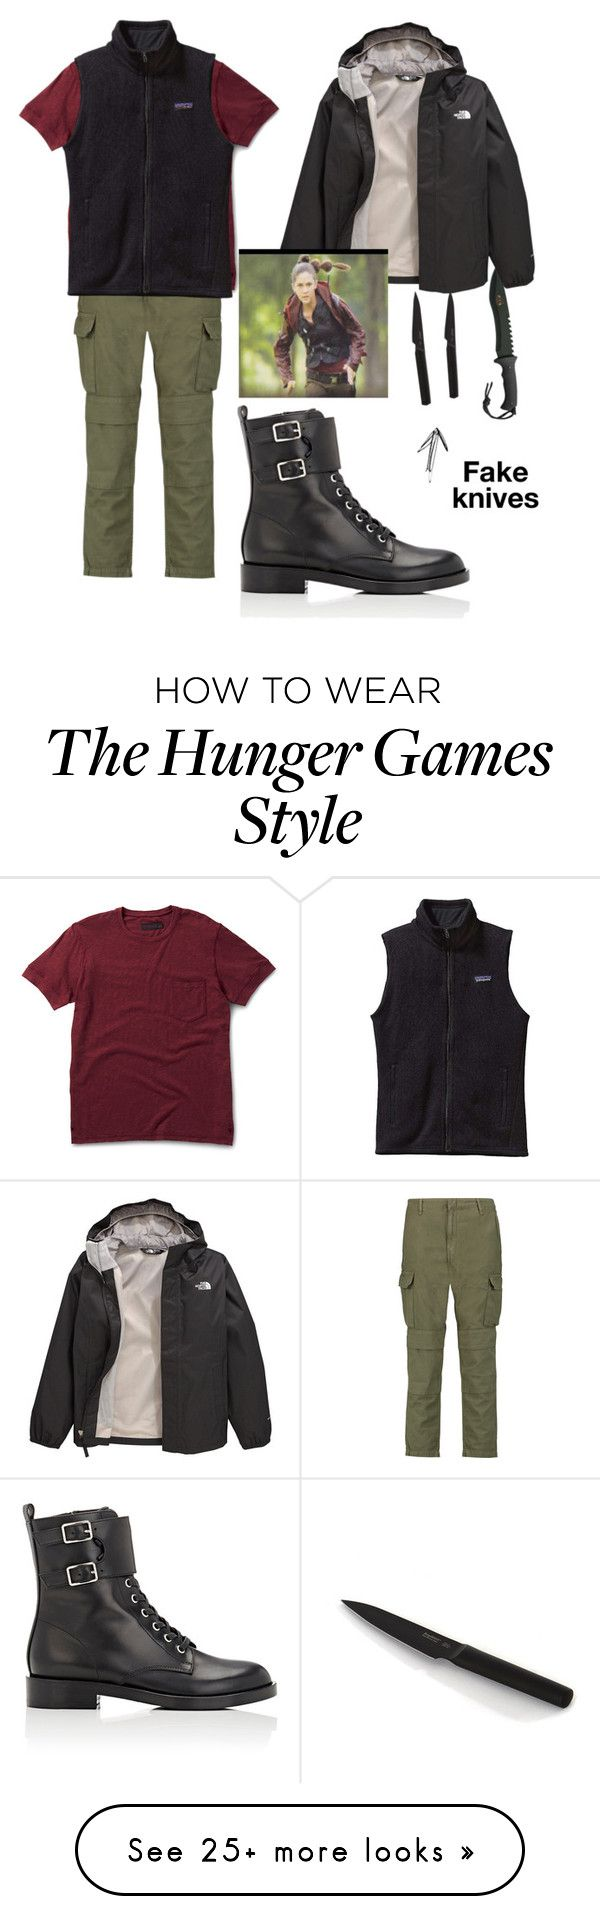 """""""Diy clove costume(hunger games)"""" by cheri-anne-g on Polyvore featuring Dr. Martens, rag & bone, Patagonia, Gianvito Rossi and The North Face"""